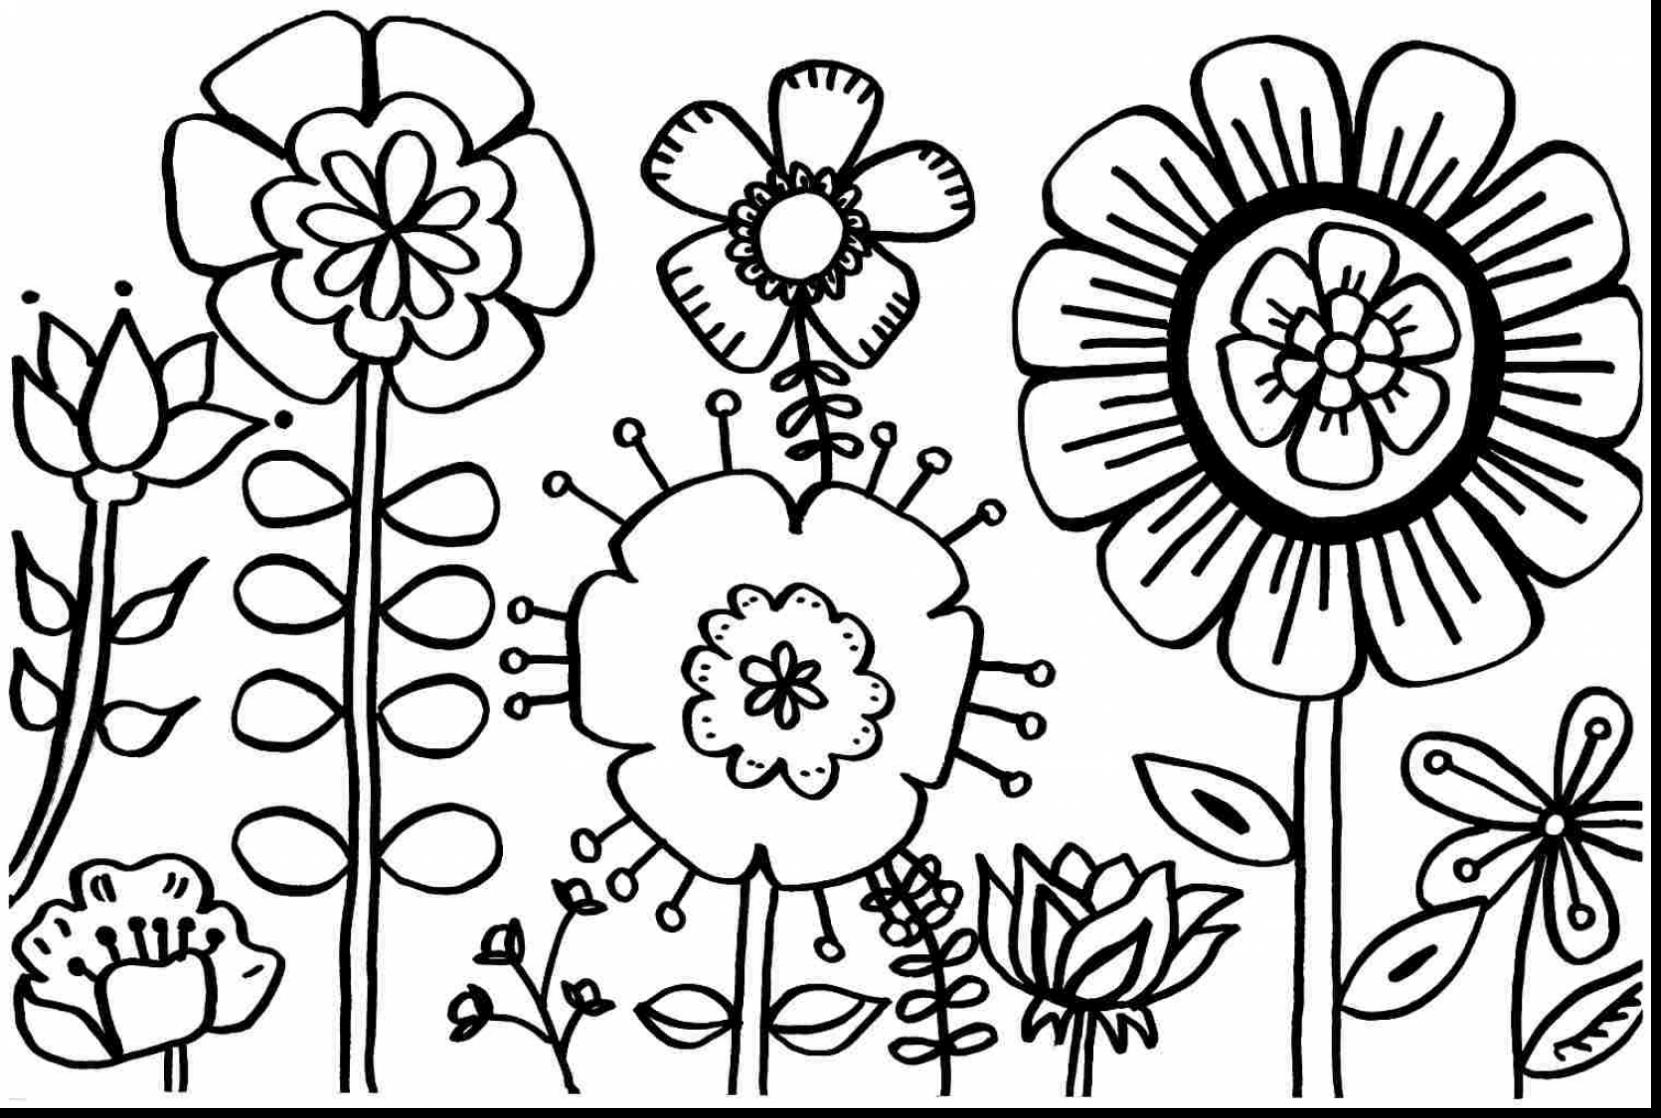 Spring Flowers Clipart Black And White | Free download best ... black and white library